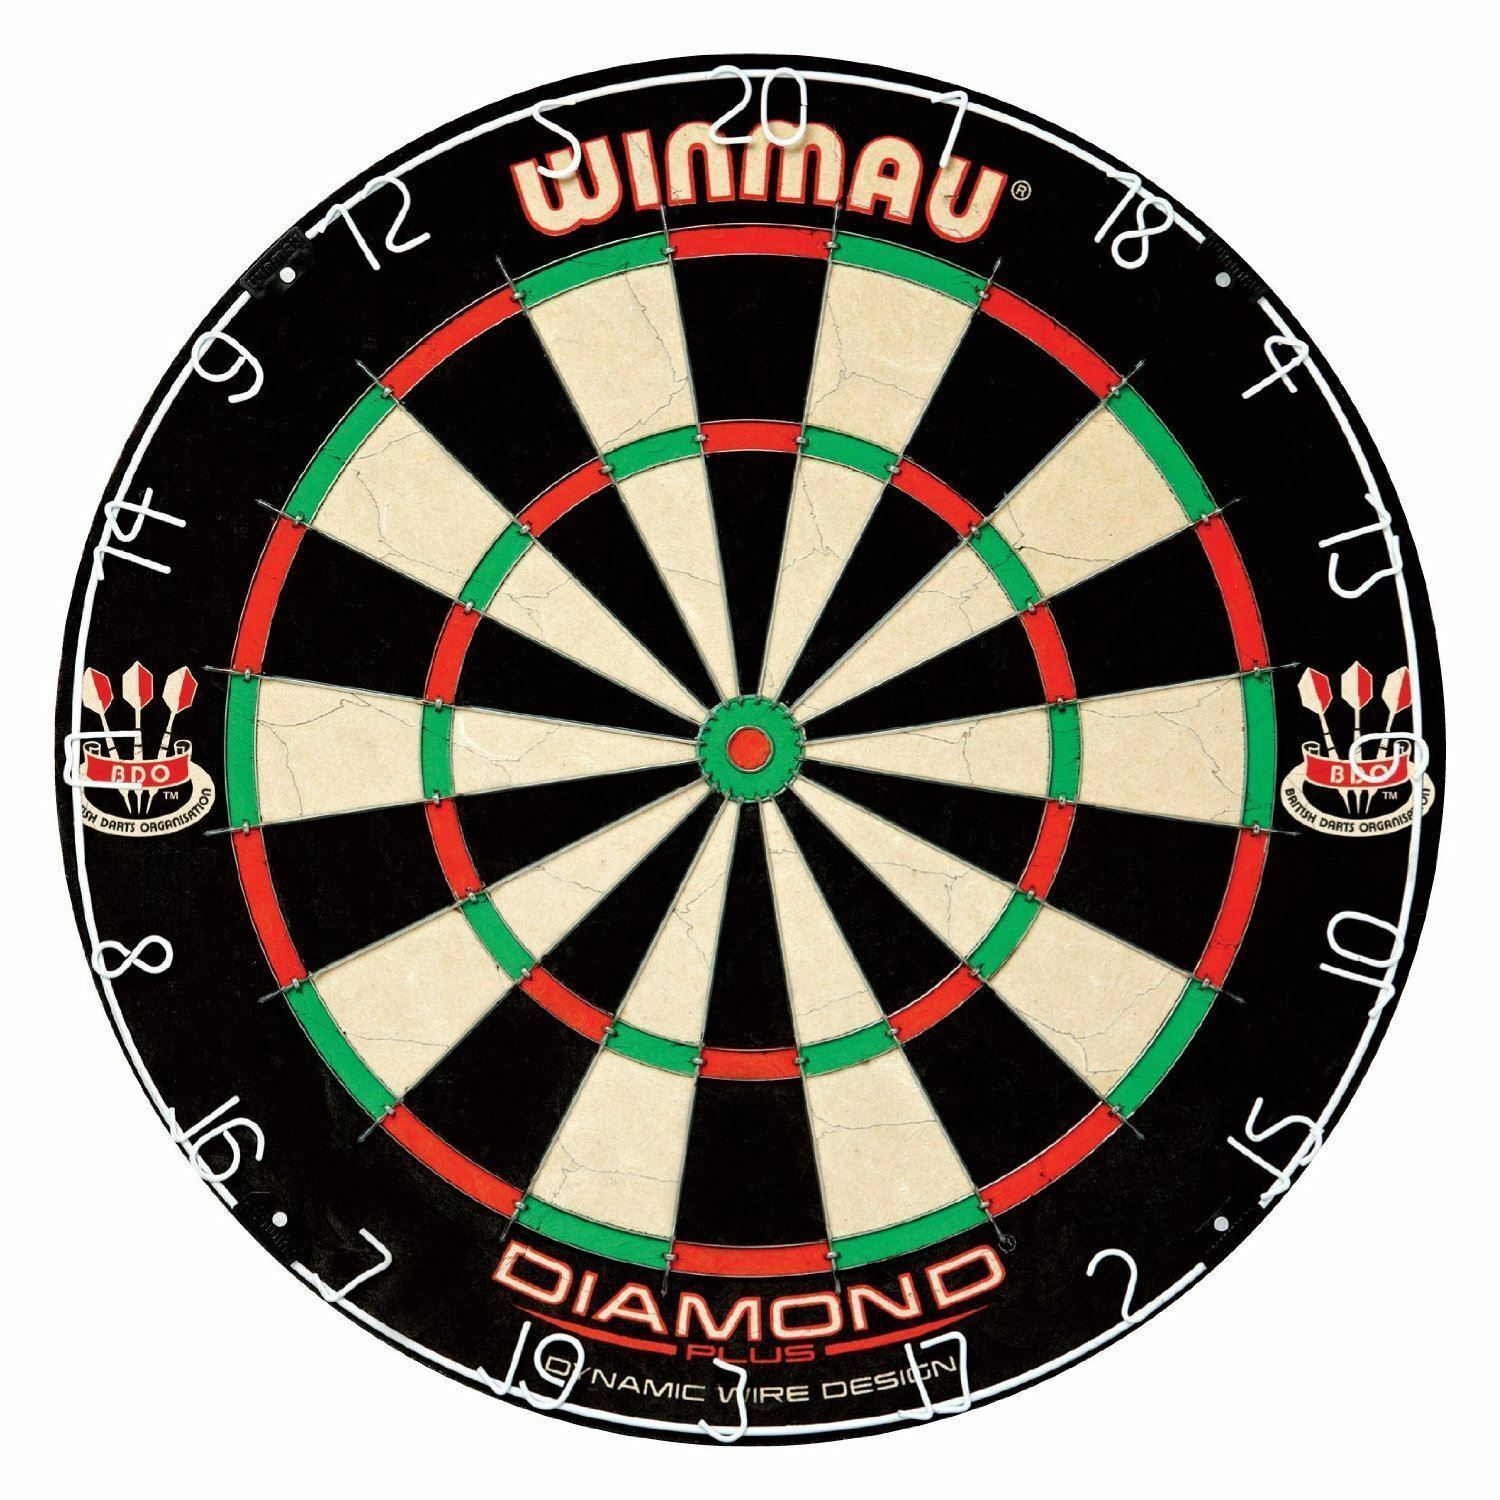 Winmau Diamond Plus Tournament Quality Full Size Dart Board Dartboard